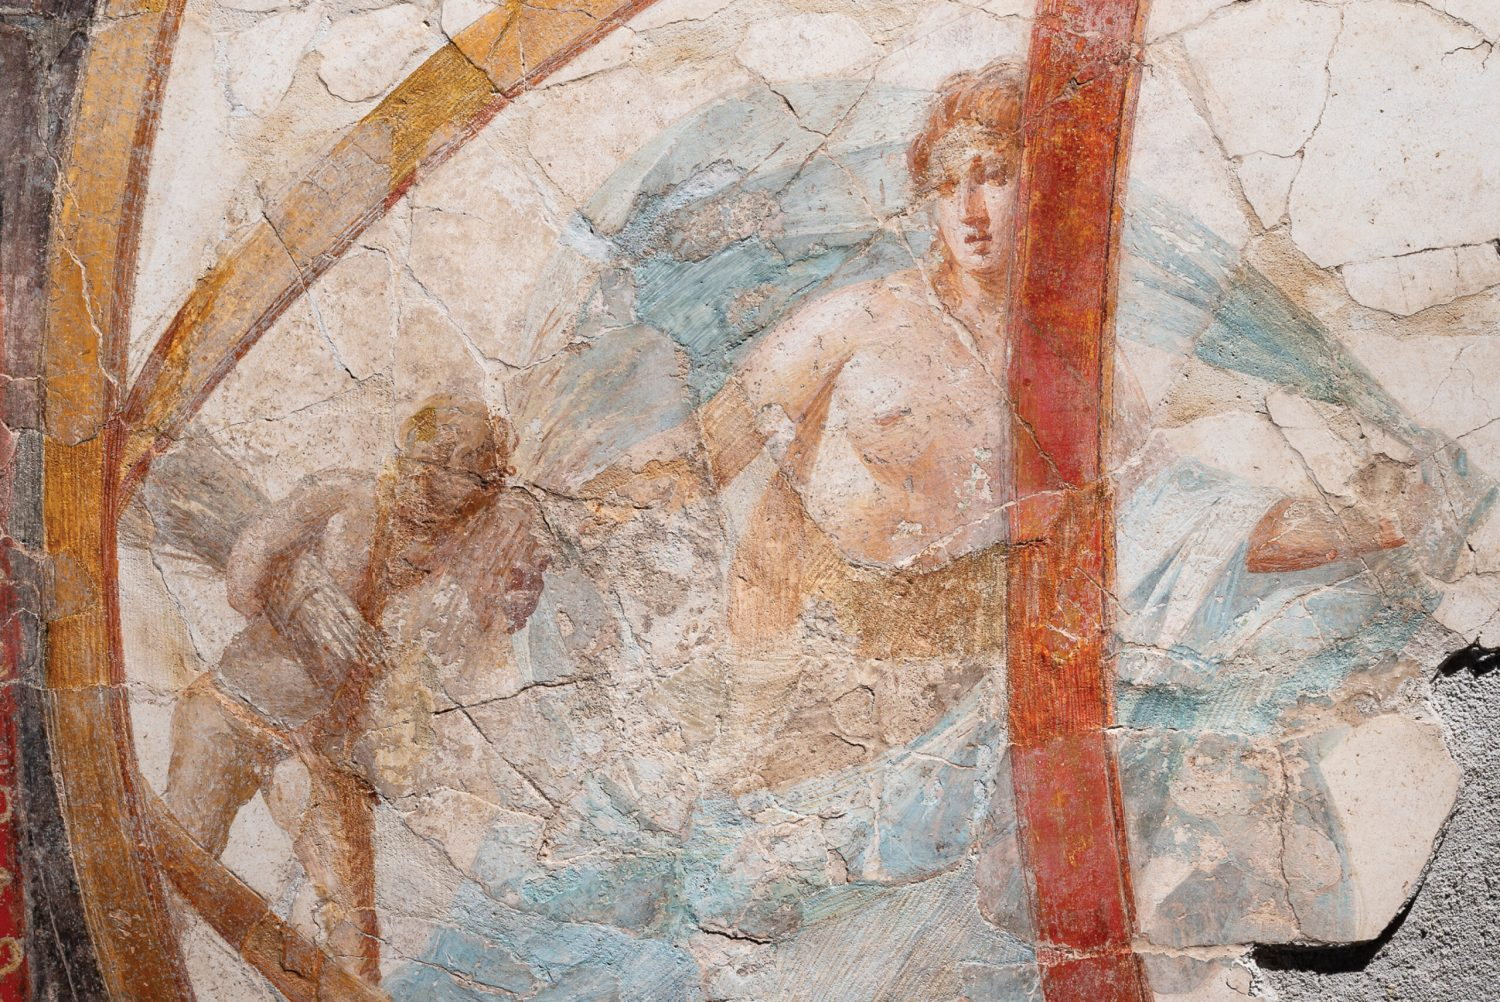 OPPOSITE Part of the frescoed ceiling from the portico of the Villa San Marco, showing a planisphere (an astronomical chart) with personifications of the seasons. 1st century AD. ABOVE A fragment of marble floor made using the opus sectile technique, which features large pieces of coloured stone. Villa San Marco, 1st century AD.